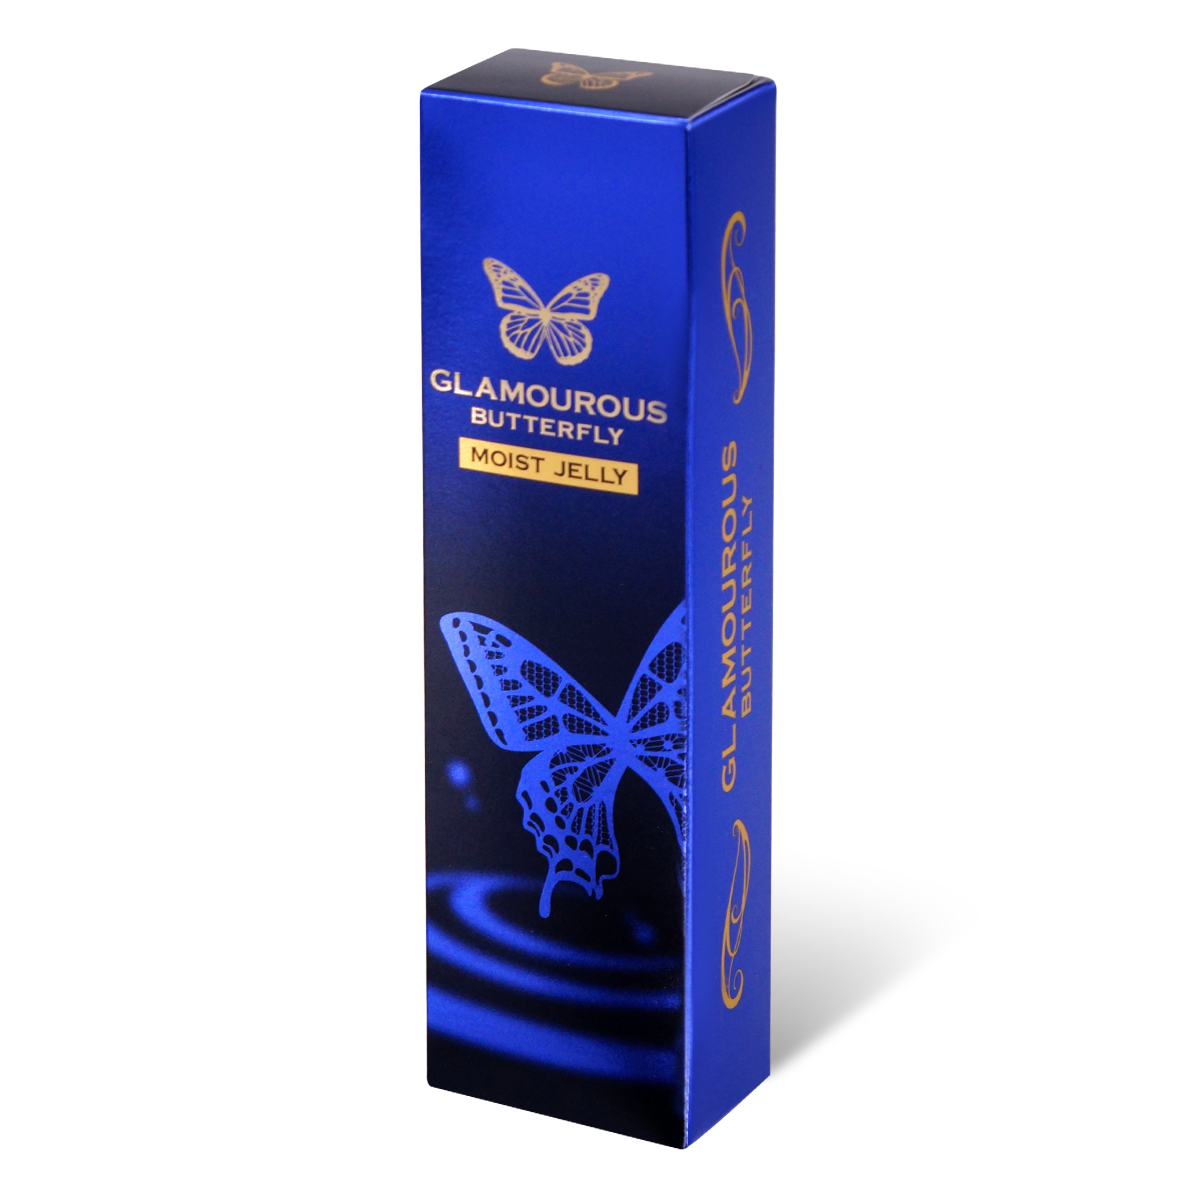 Glamourous Butterfly Moist Jelly 30ml Water-based Lubricant